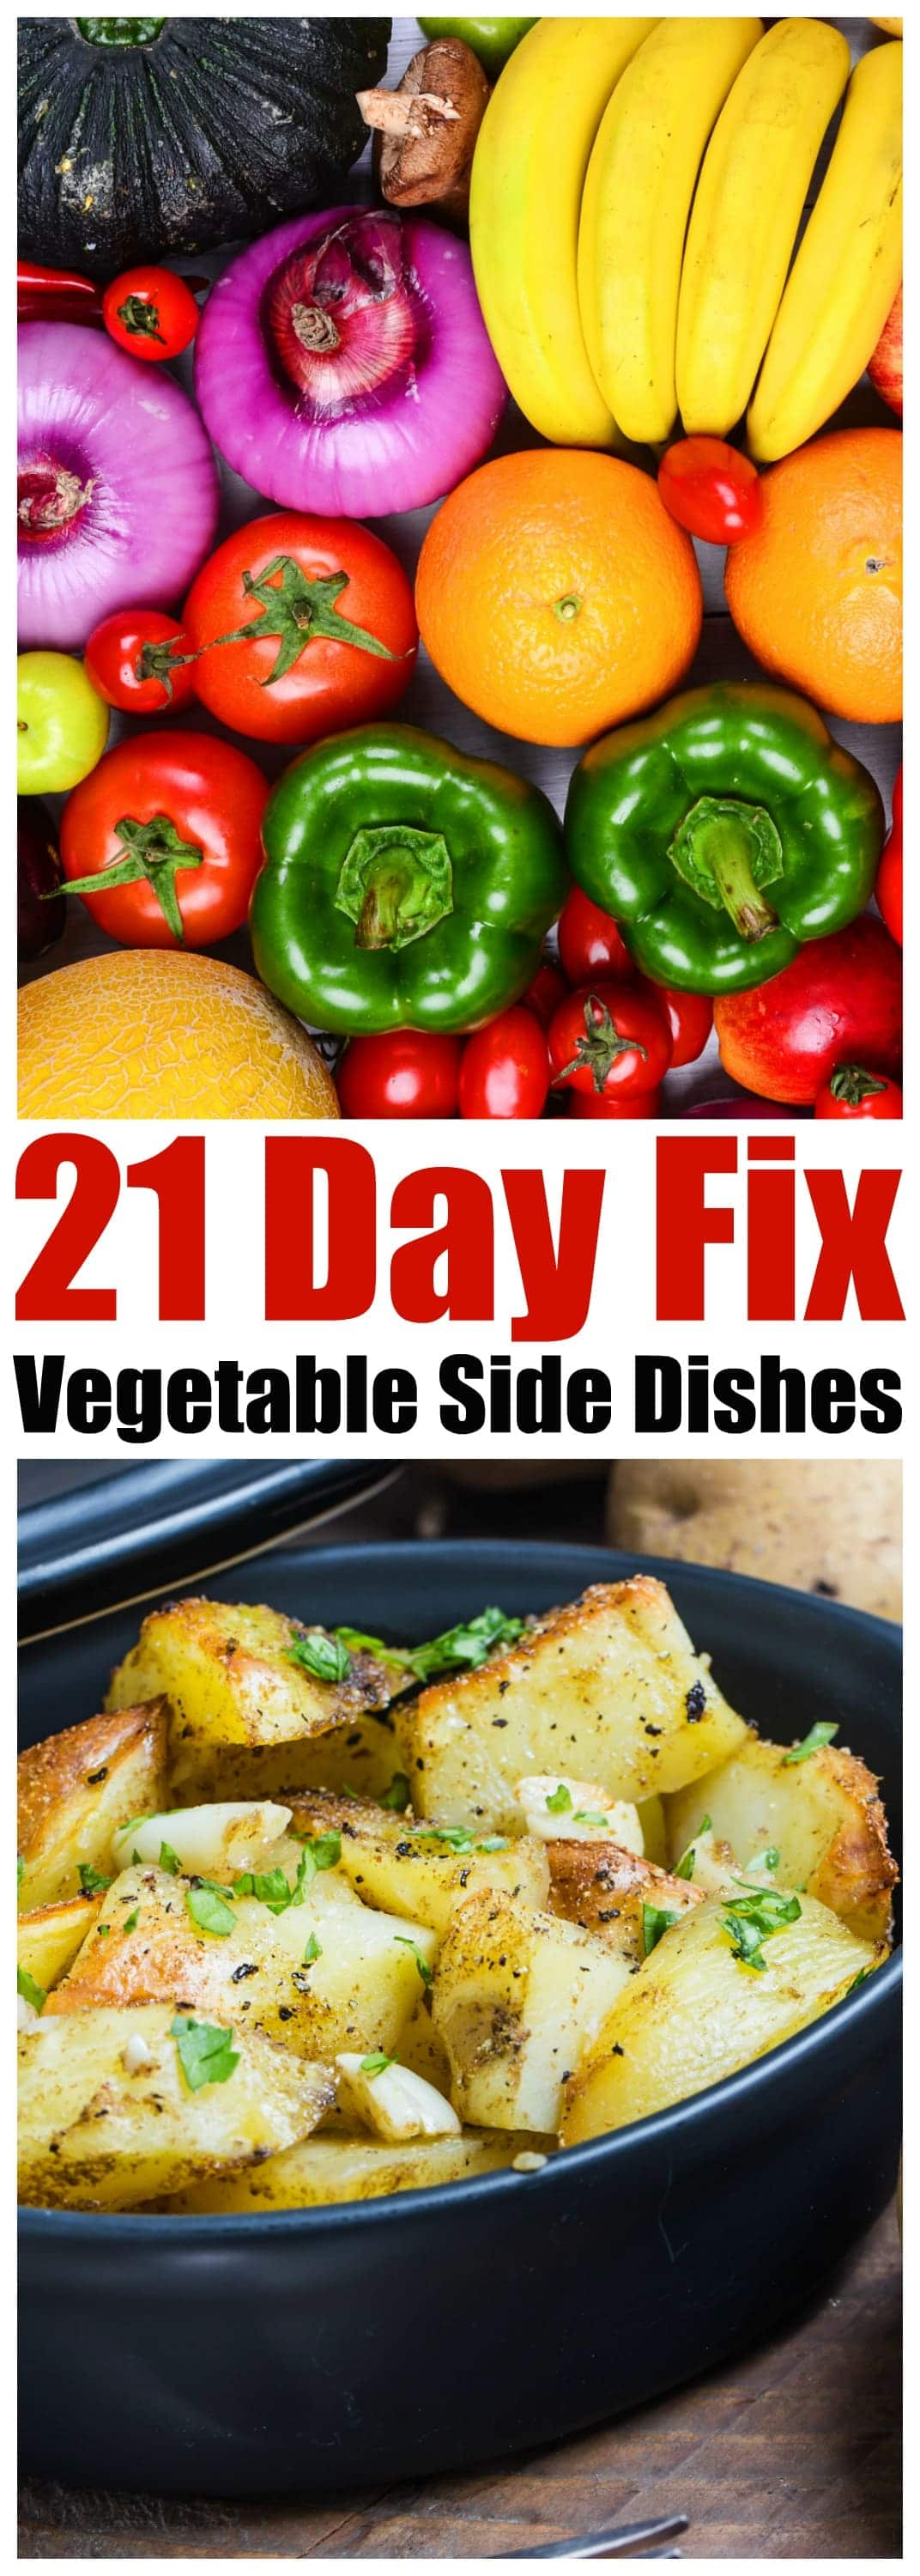 21 Day Fix Vegetables